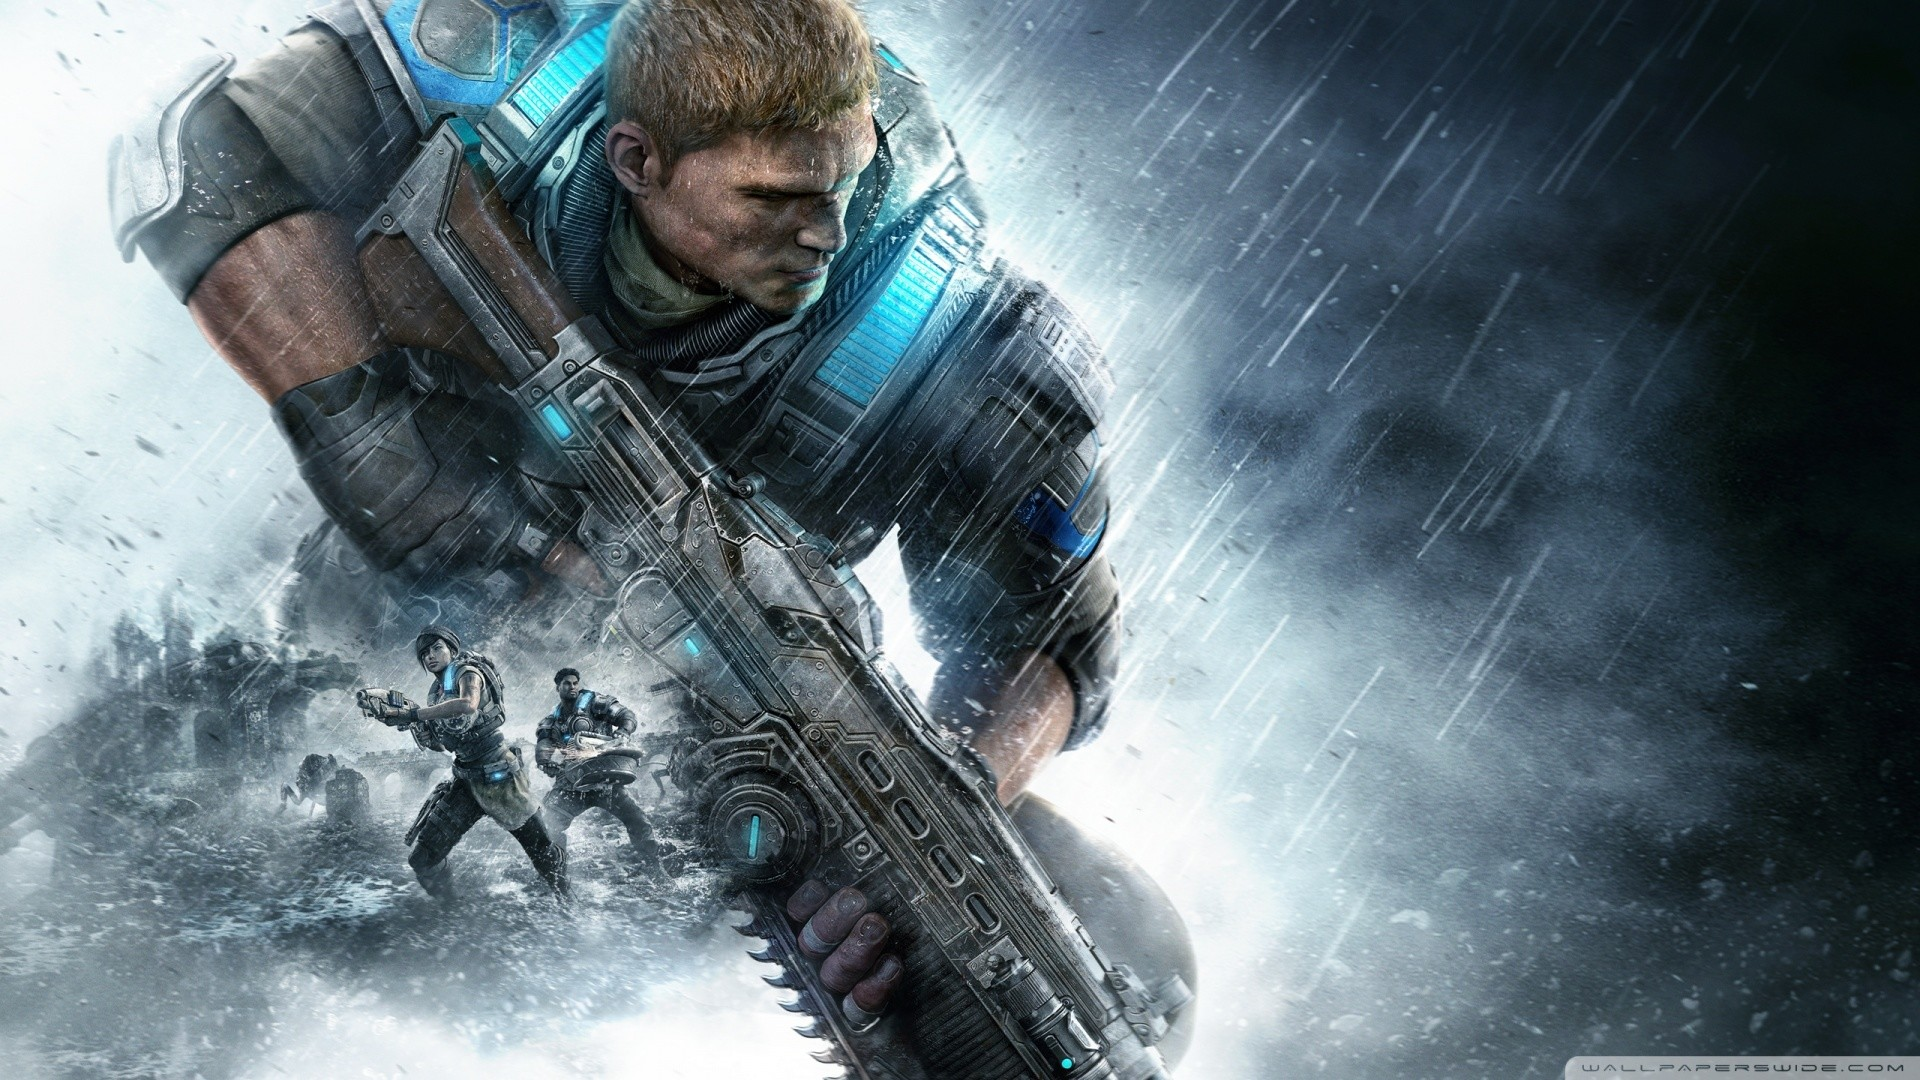 Gears Of War 4 Xbox One HD Wide Wallpaper for Widescreen